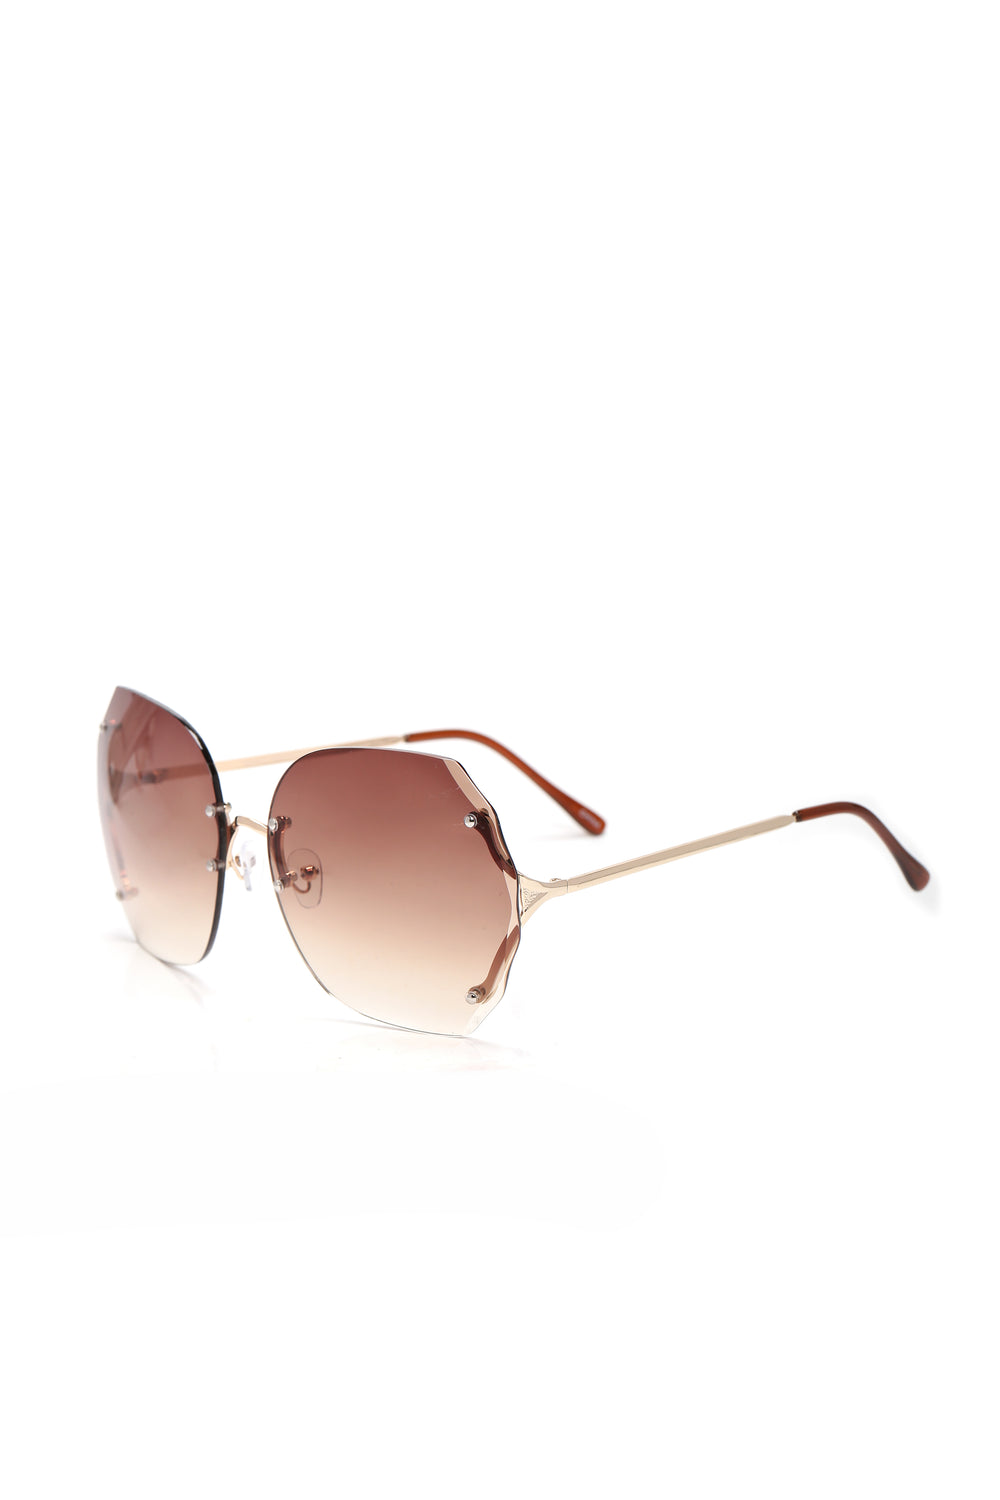 Through The Wire Sunglasses - Brown